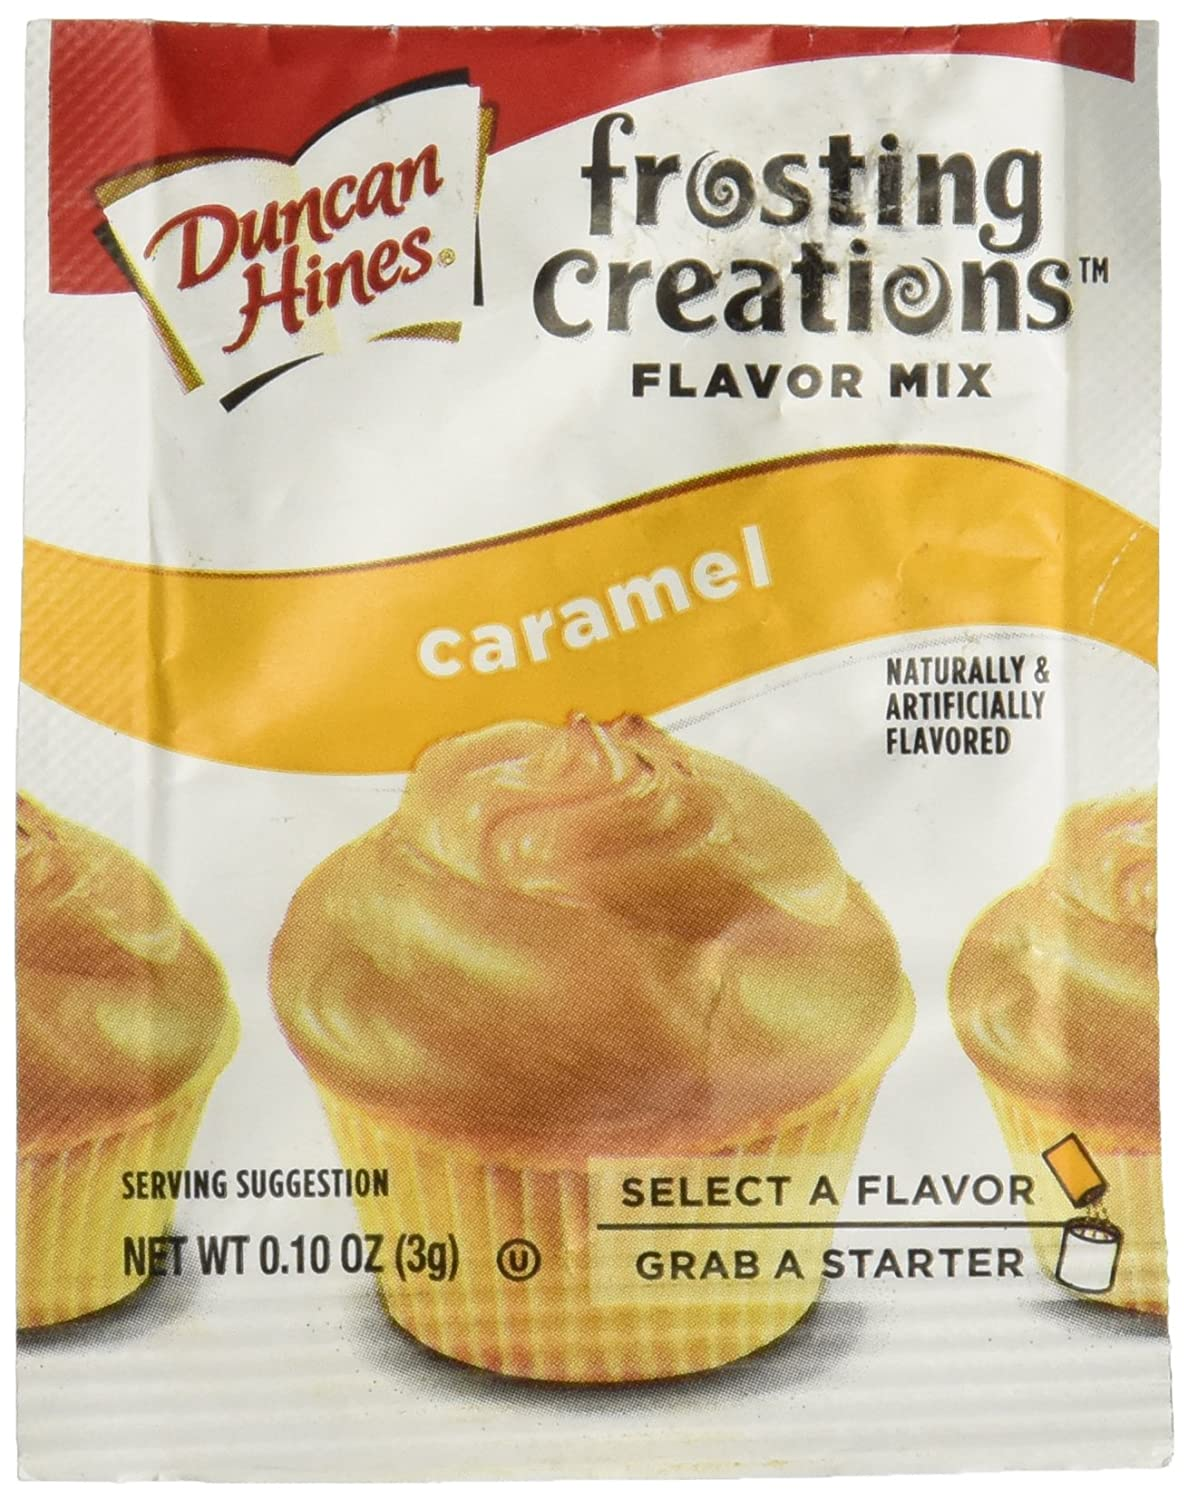 Amazon.com : Duncan Hines Frosting Creations Flavor Mix Caramel ...